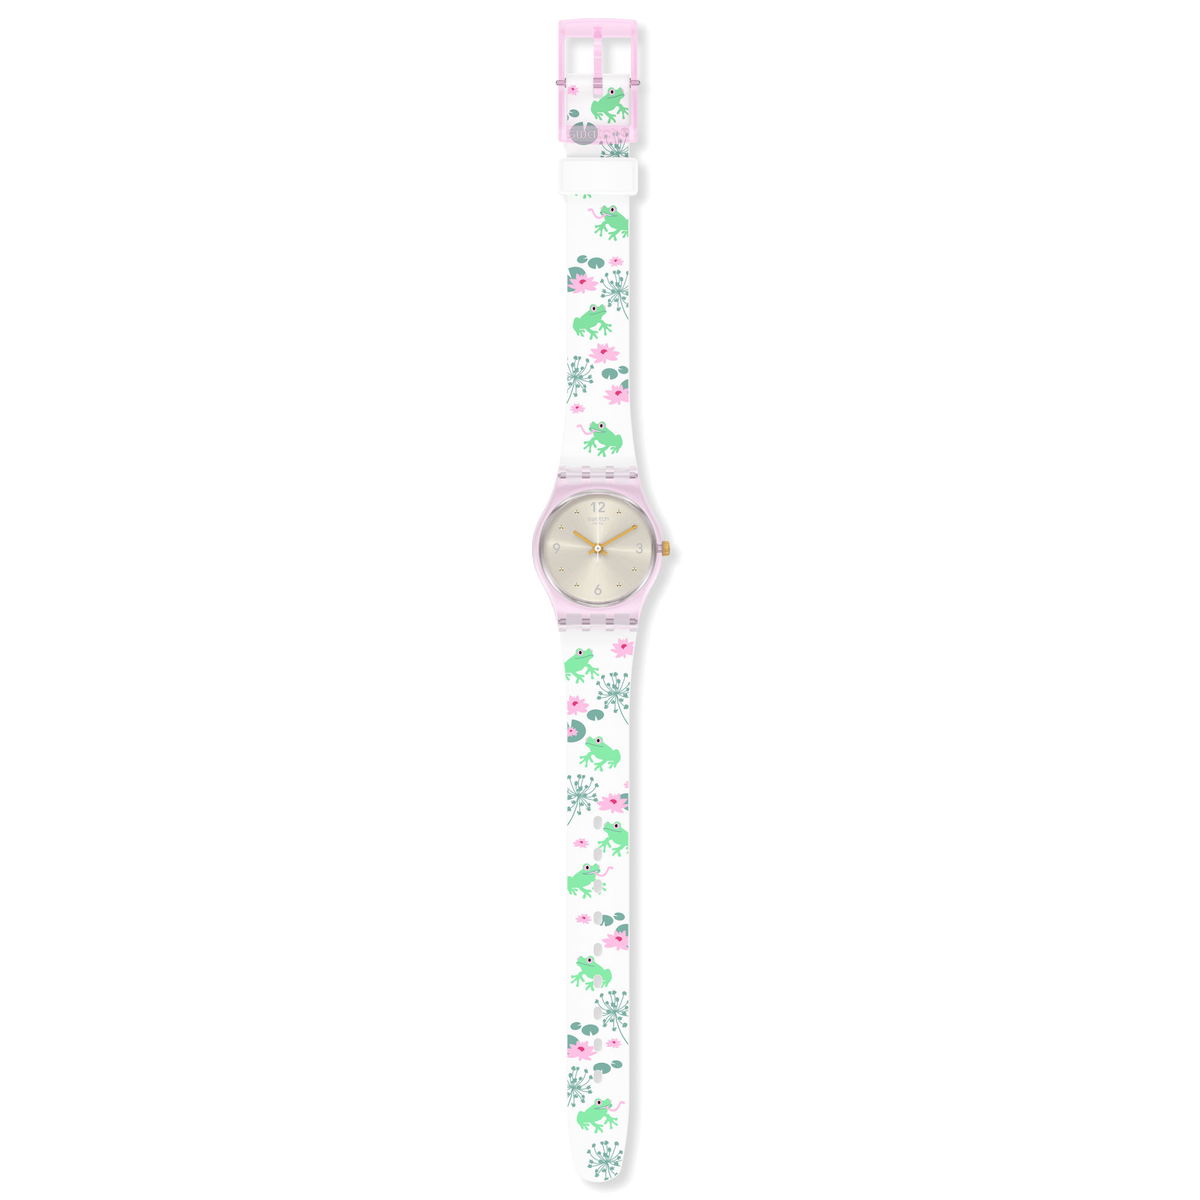 Swatch Watch 25mm - Enchanted Pond